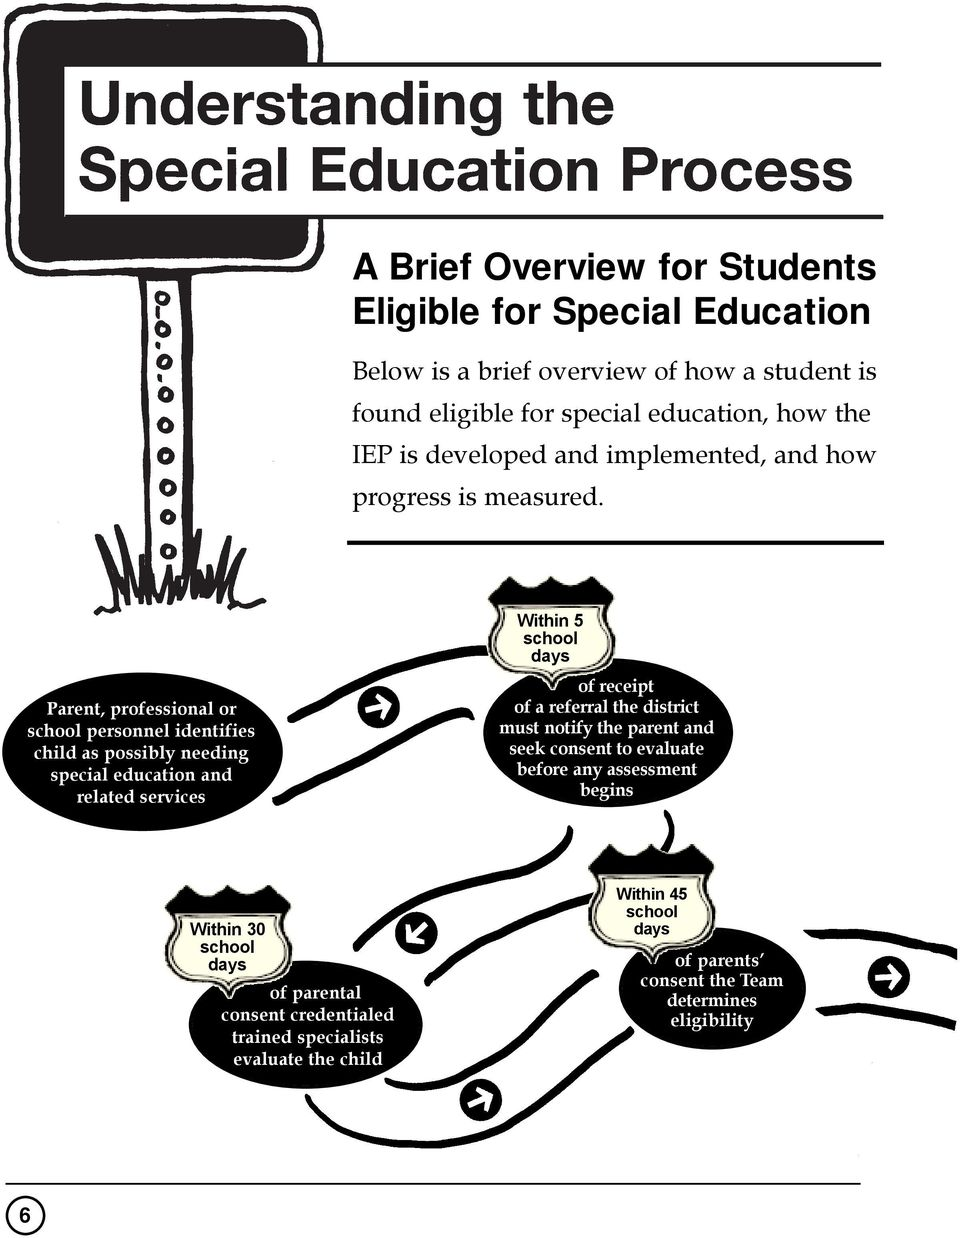 Parent, professional or school personnel identifies child as possibly needing special education and related services Within 5 school days of receipt of a